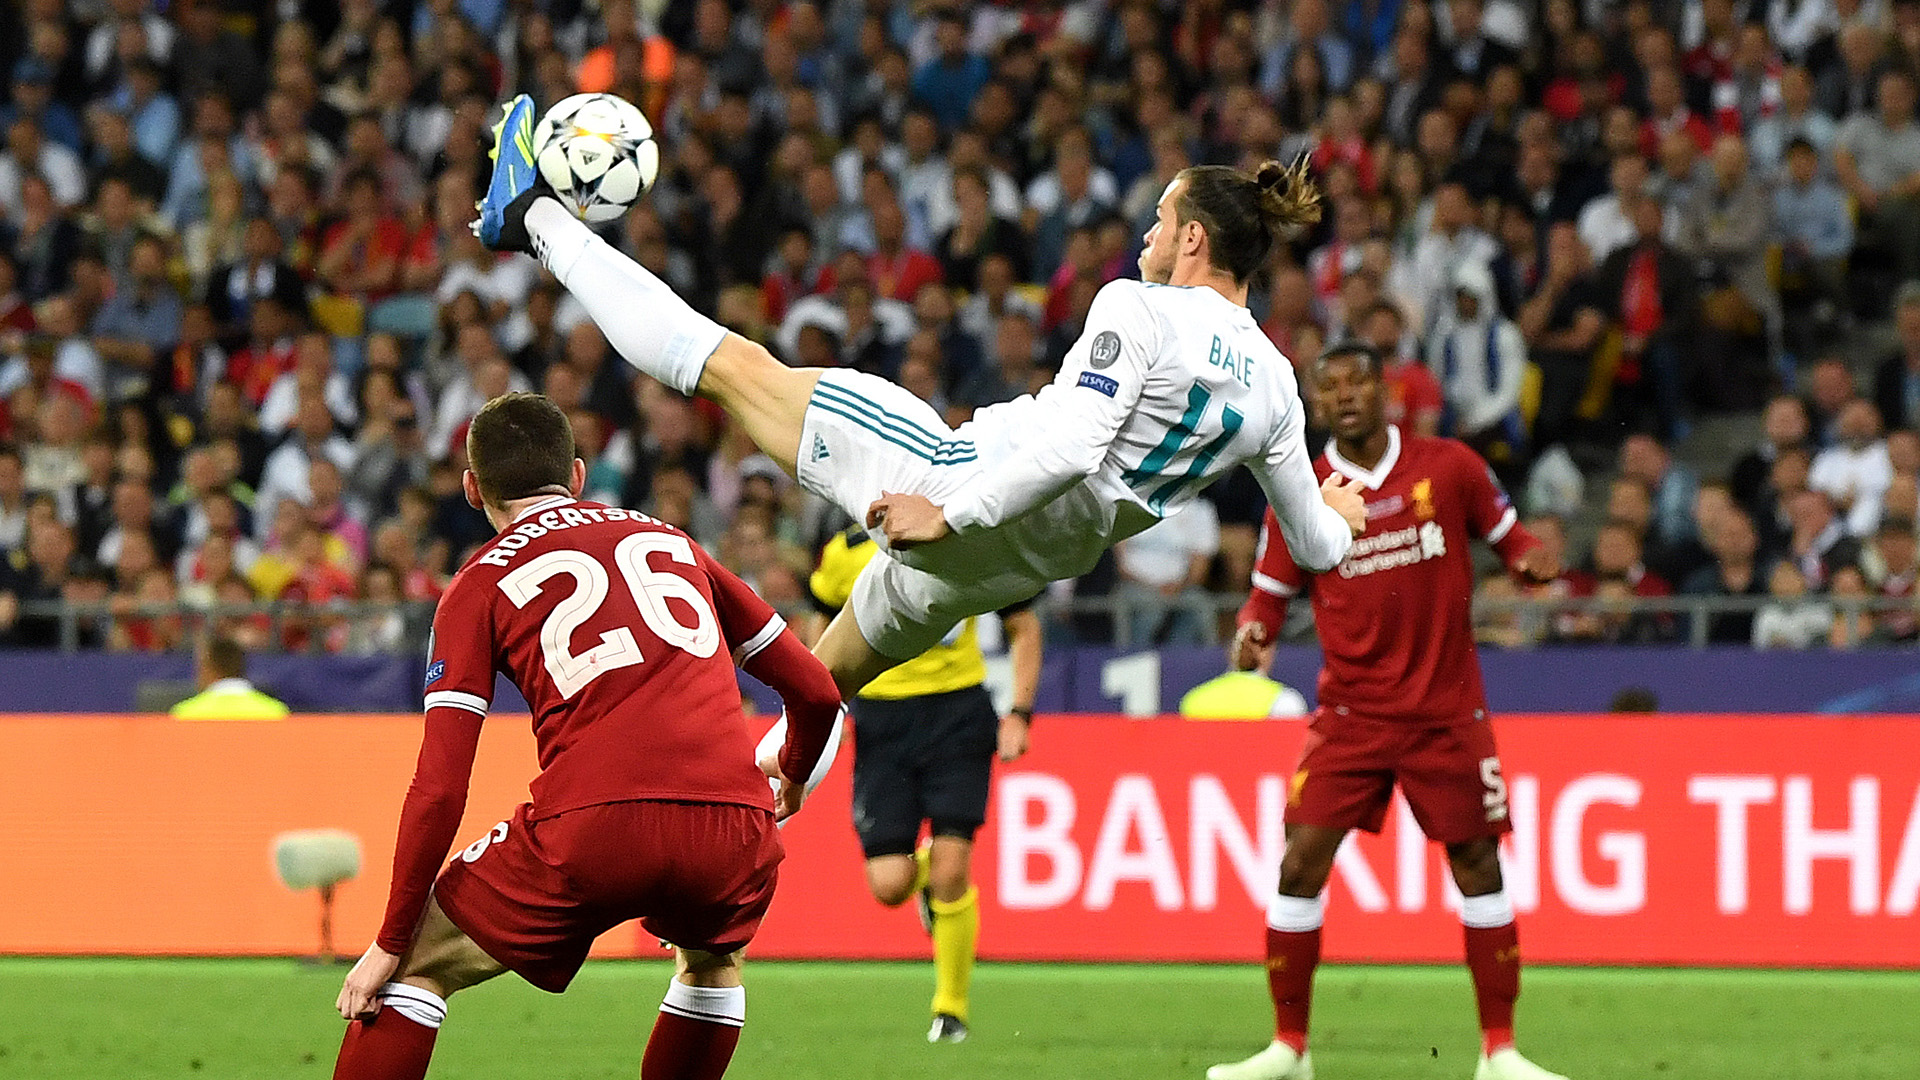 Gareth Bale Real Madrid bicycle kick goal Champions League final 2018